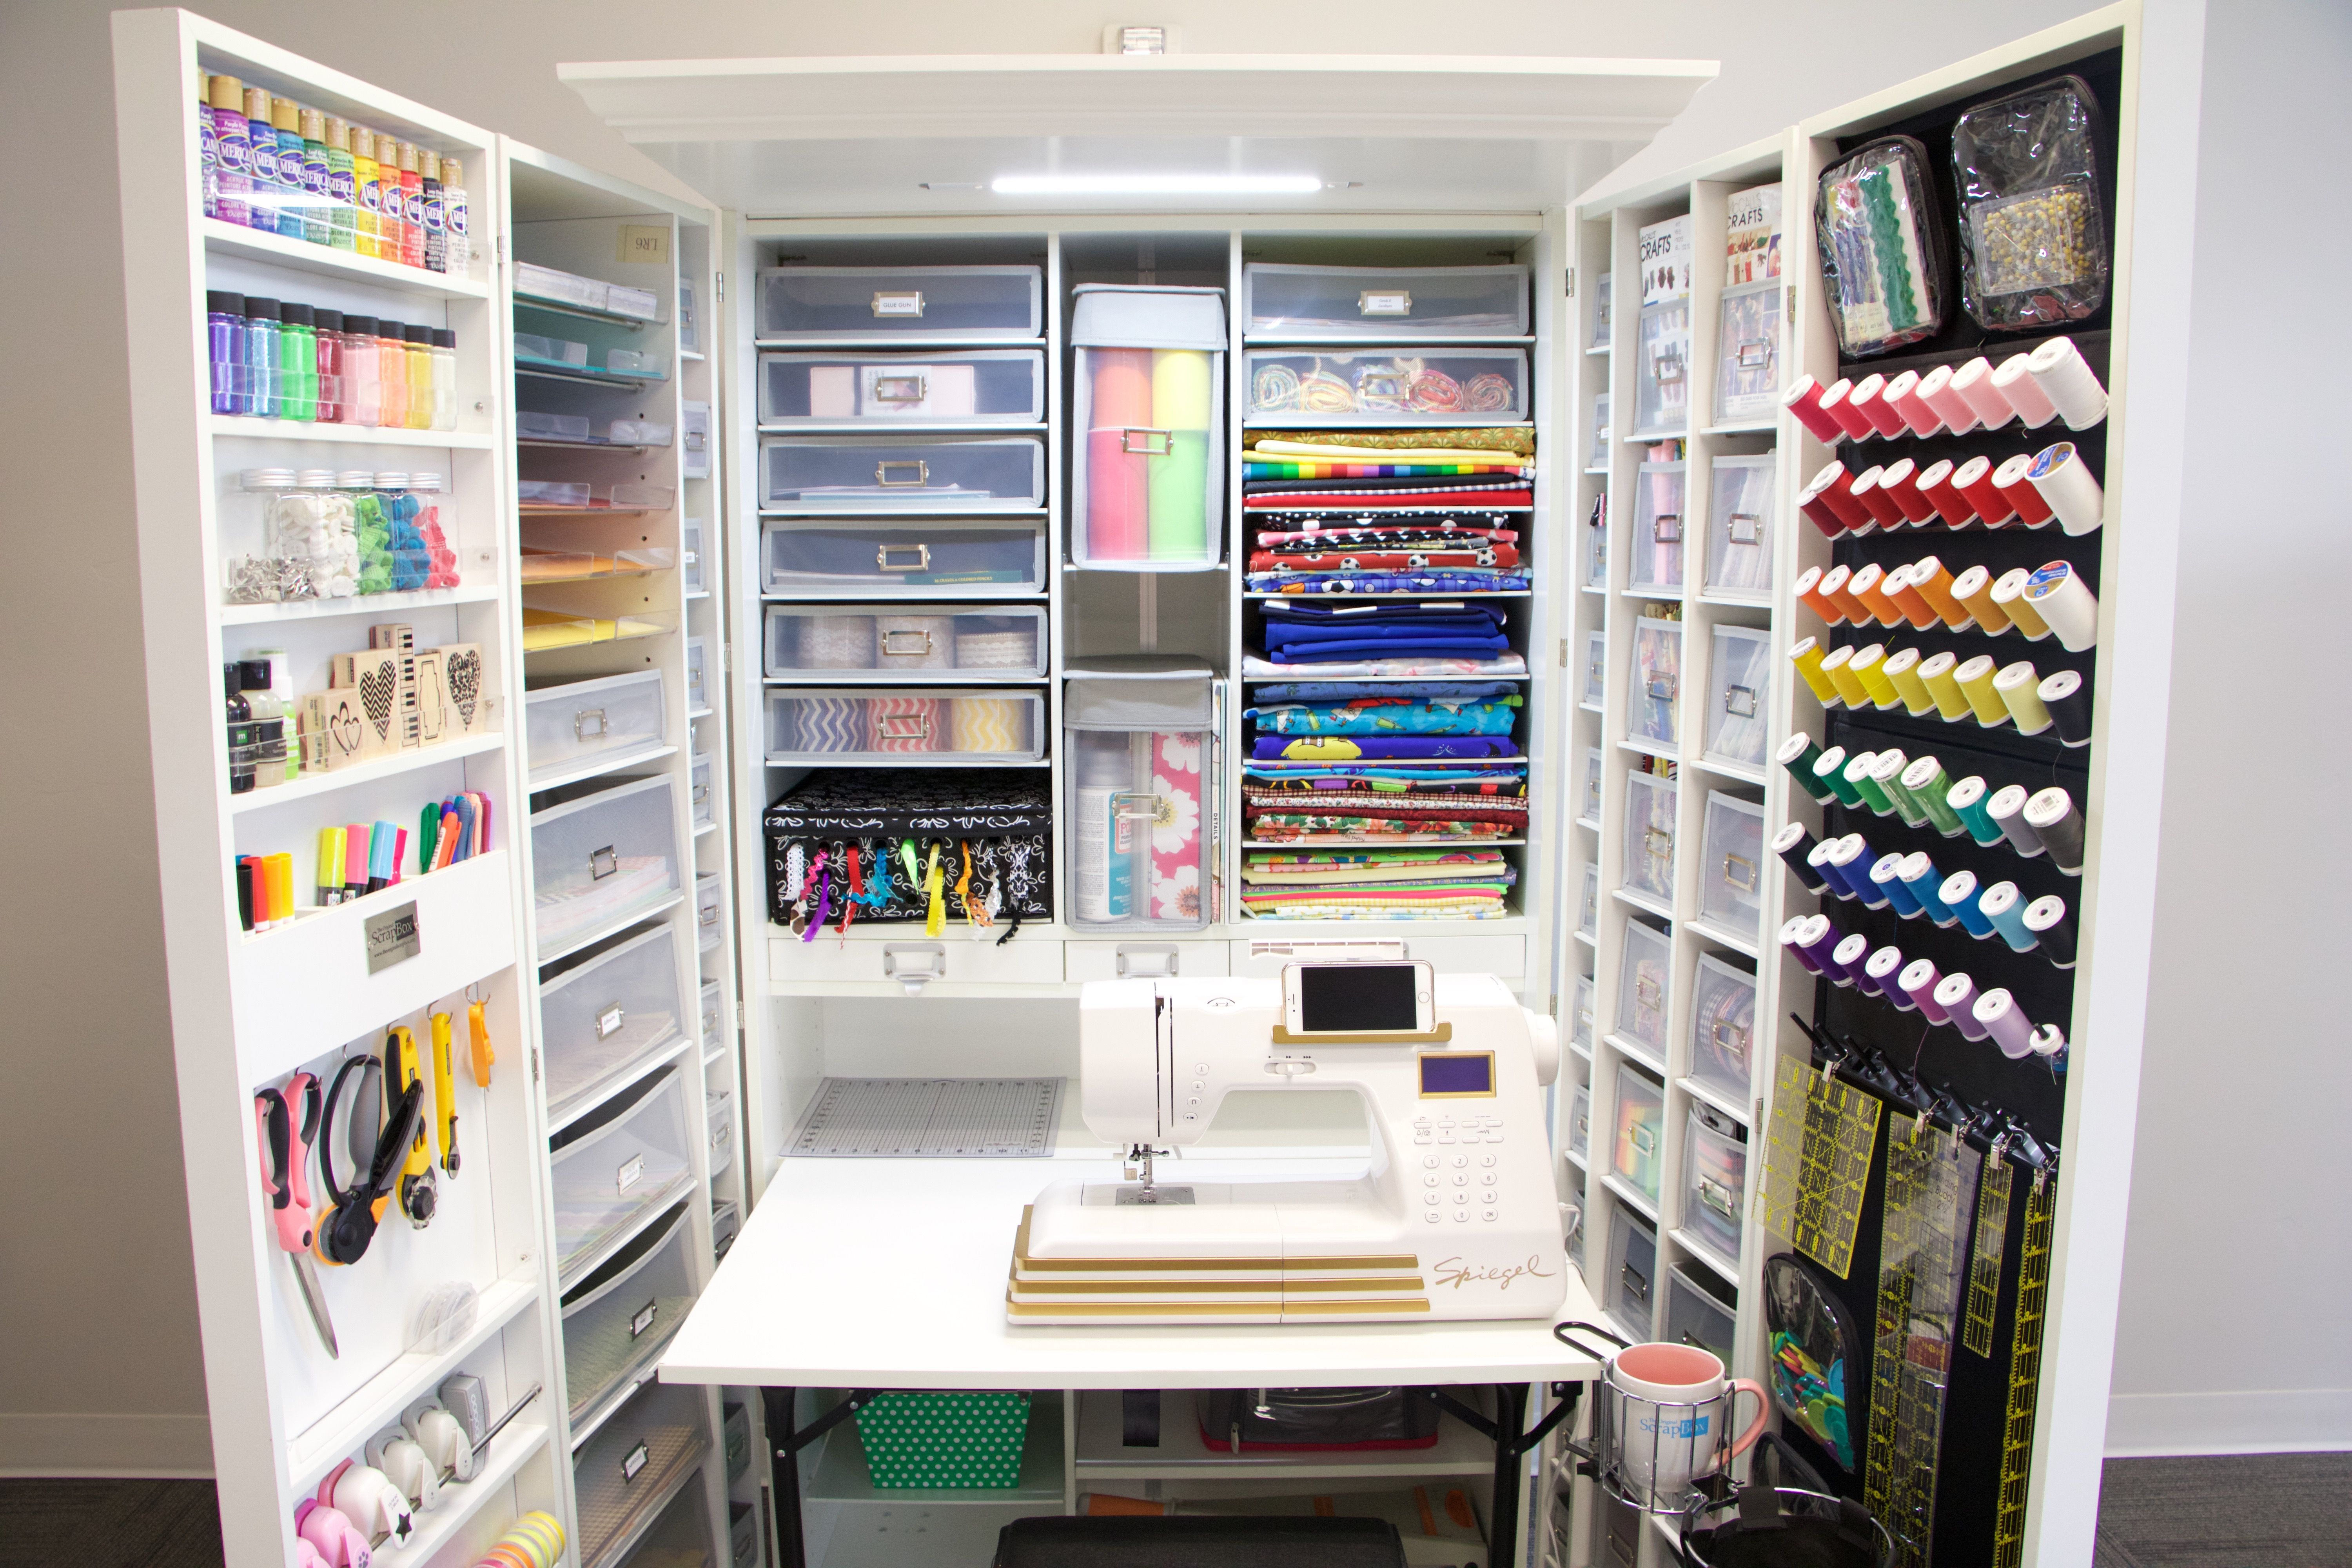 The Workbox 2 0 Is Your Ideal Dream Storage Solution Whether For Crafter Hobbyist Or As A Home Office Armadio